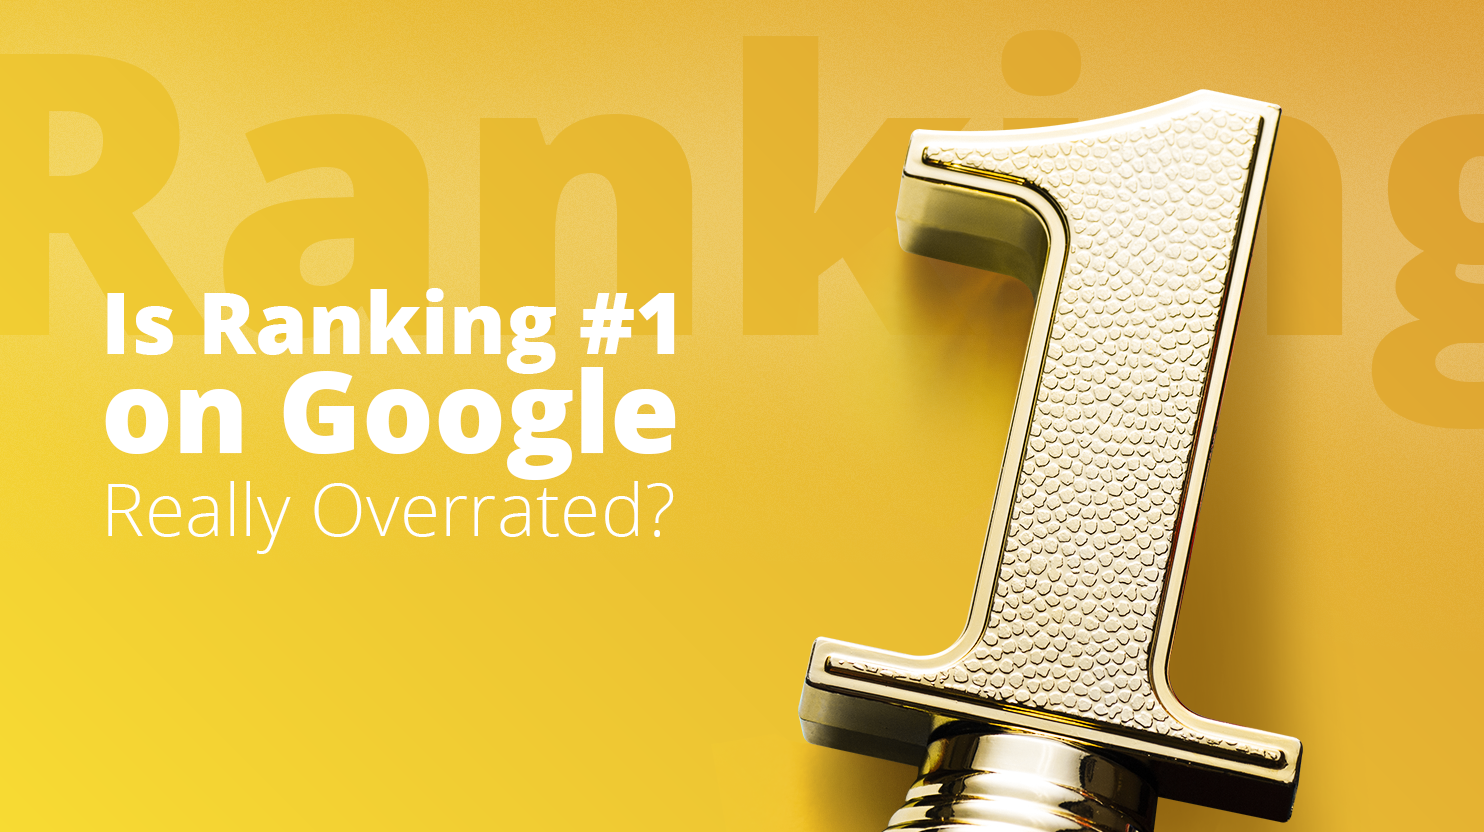 Is Ranking #1 on Google Really Overrated?